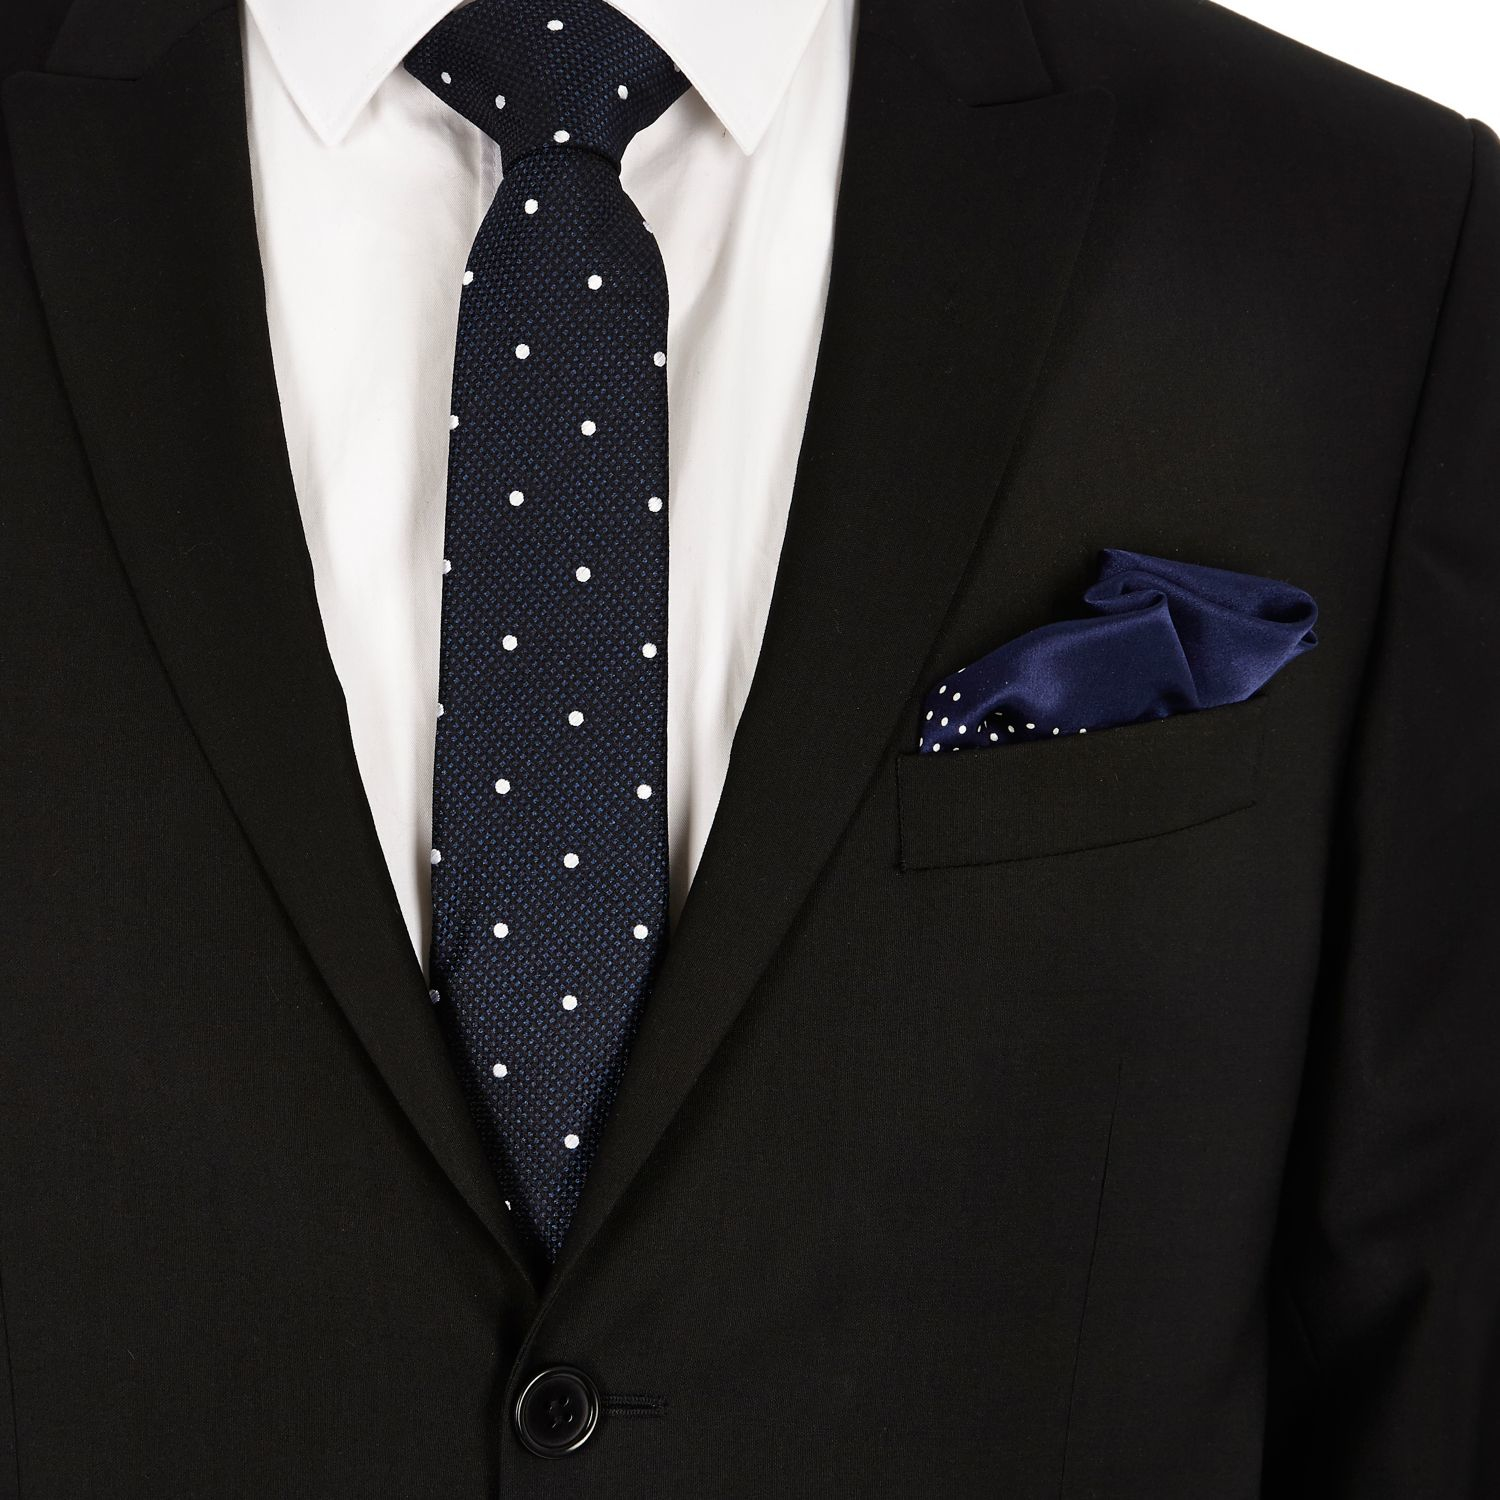 62a0fce42a92 River Island Navy Silk Polka Dot Tie And Pocket Square Set in Blue ...